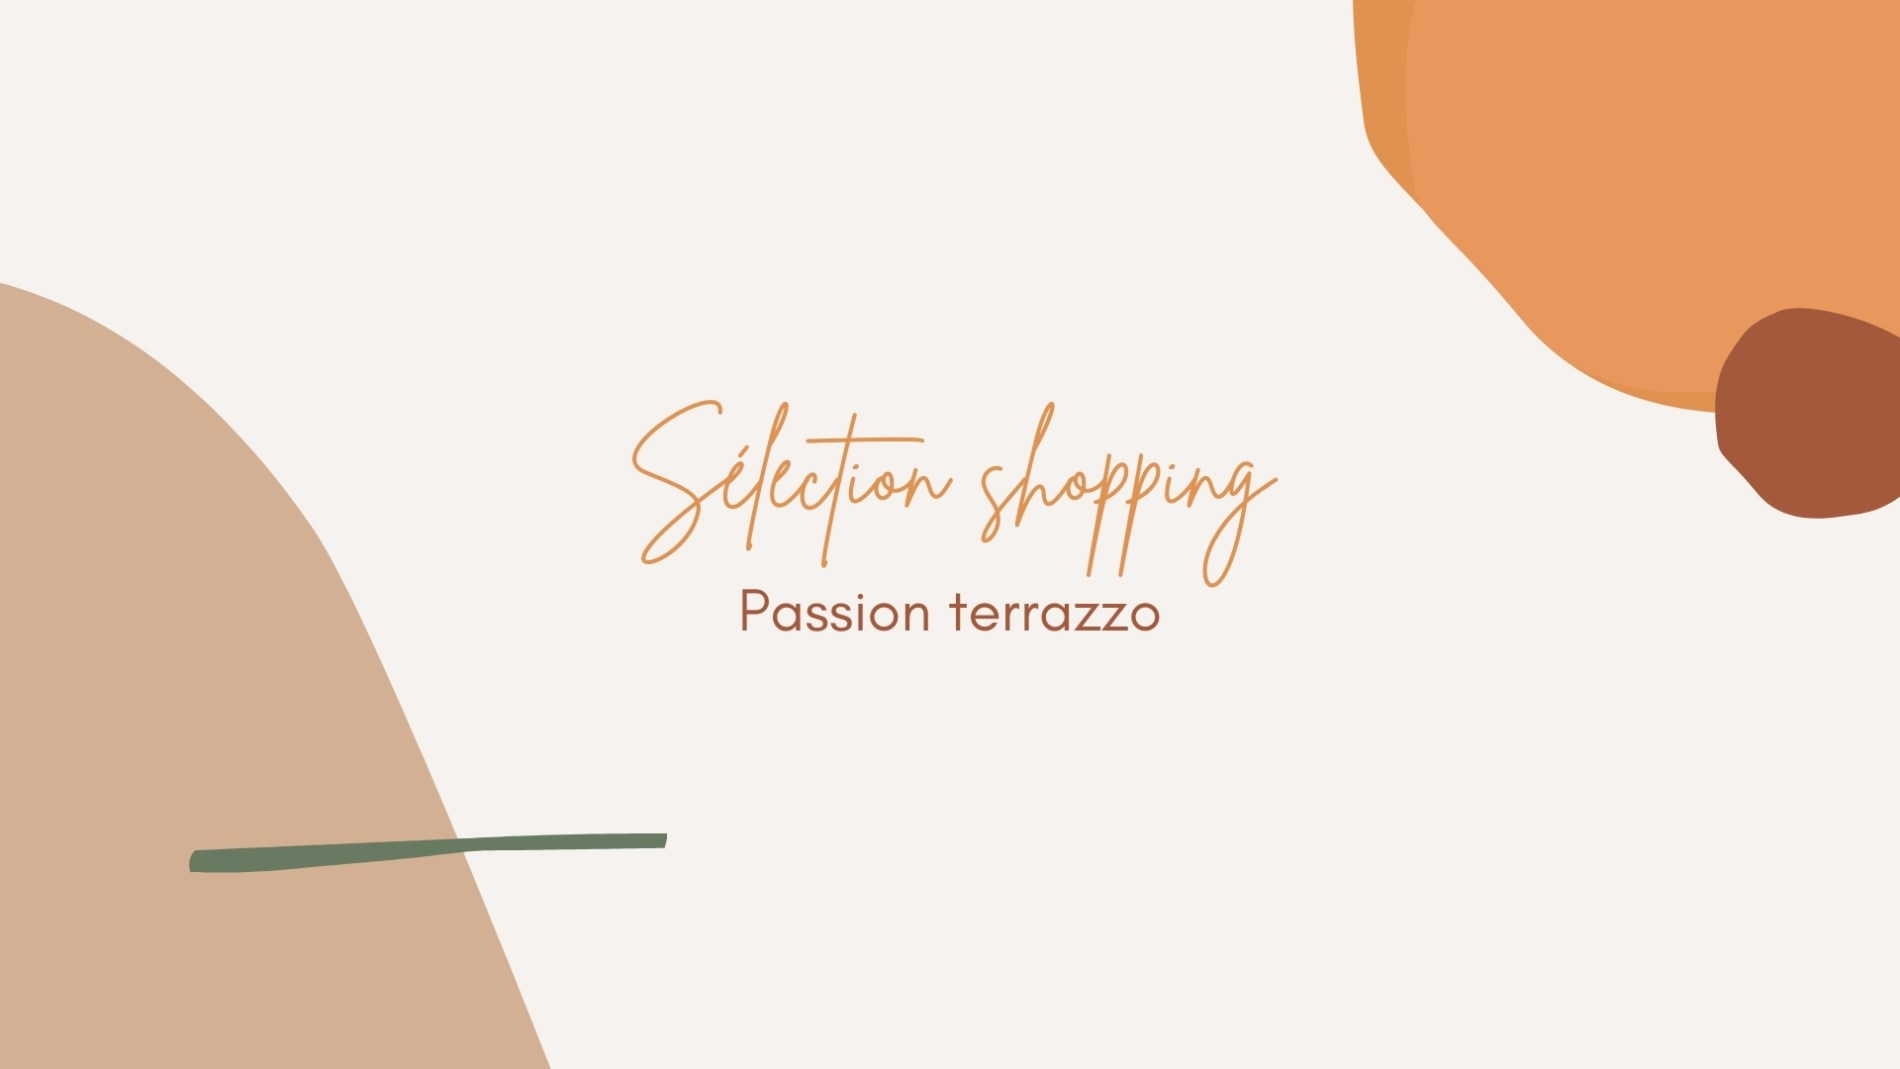 selection-shopping-passion-terrazzo